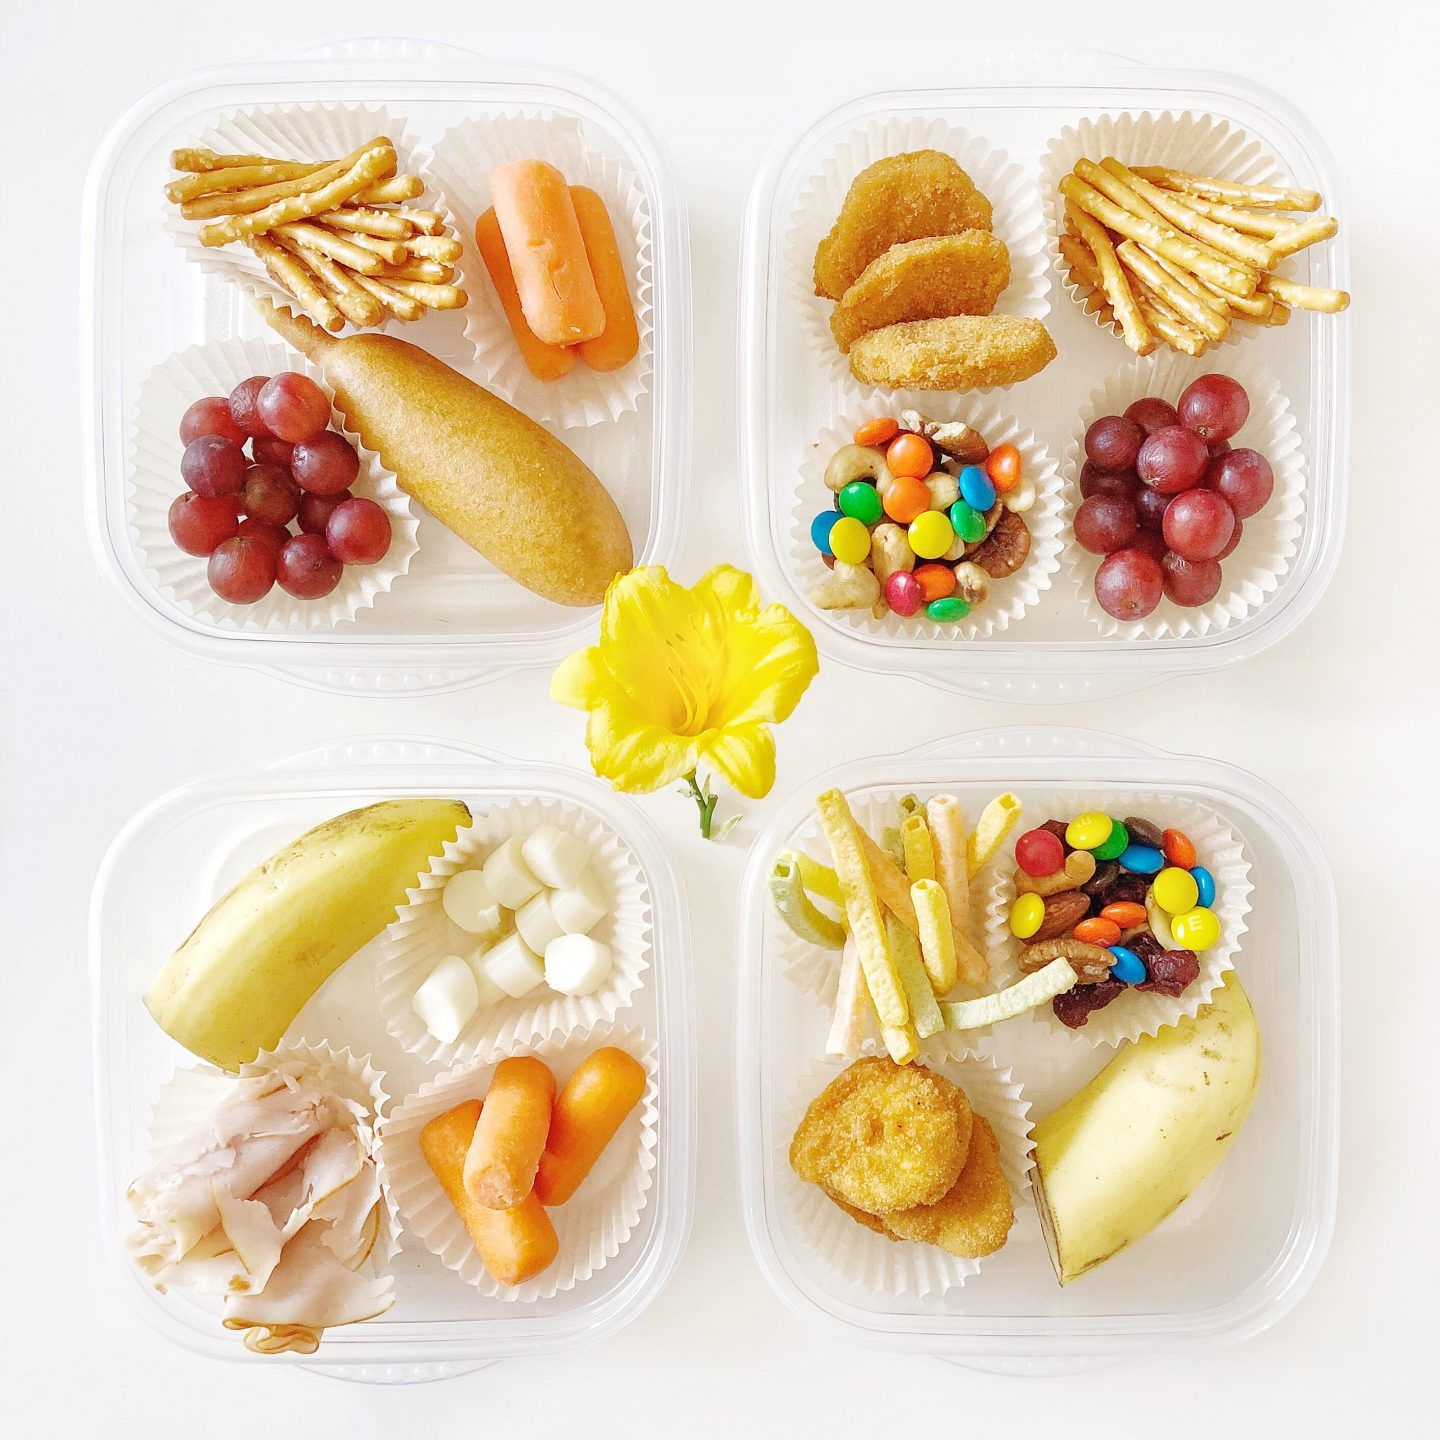 homemade easy lunches and snack packs, tyson at kroger, back to school grocery prep afterschool snack packs, diy lunchables, snack time, bento boxes